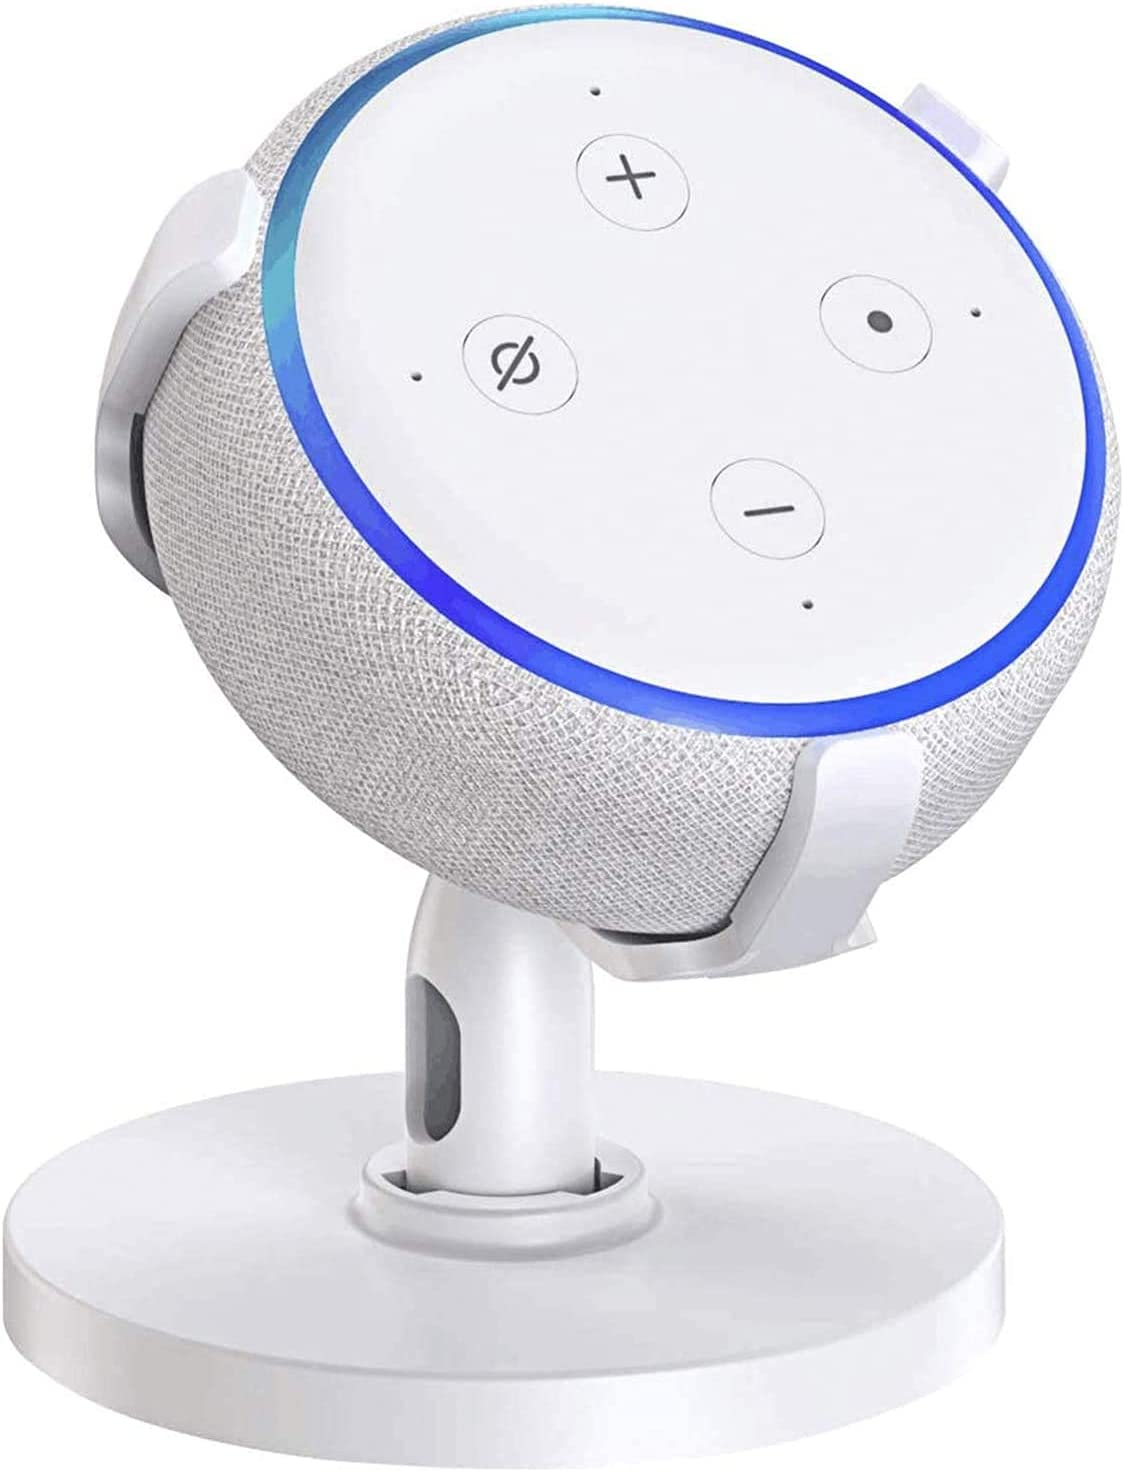 ECOEMO Table Holder for Dot 3rd Generation, 360° Adjustable Stand Bracket Mount for Smart Home Speaker, Improves Sound Visibility and Appearance, Dot Accessories (White)